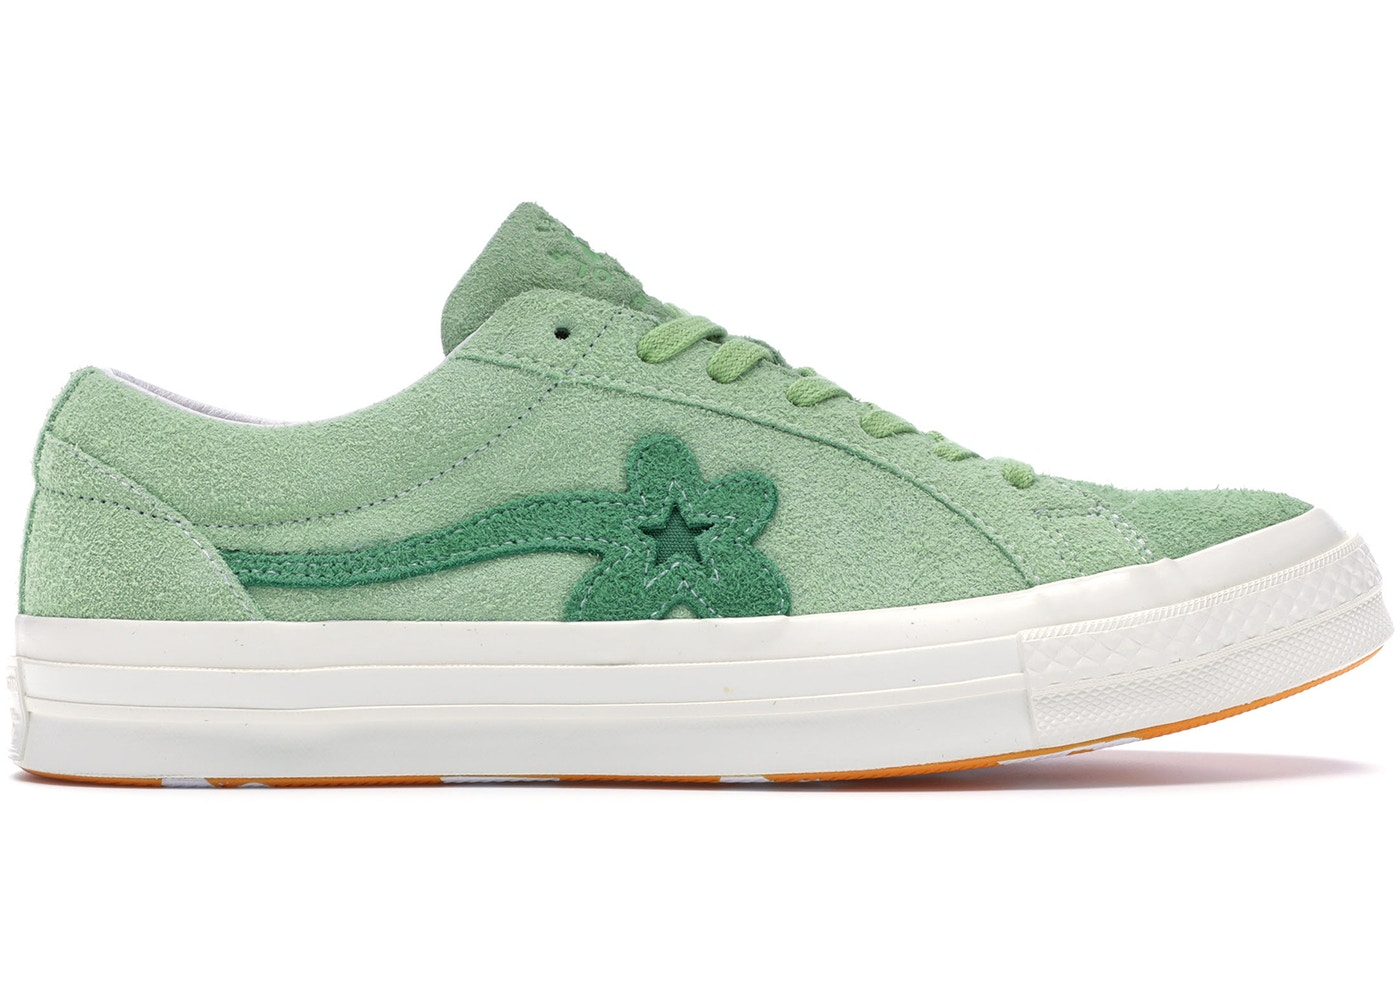 94e66f1ad394 Converse One Star Ox Tyler the Creator Golf Le Fleur Jade Lime - 160327C